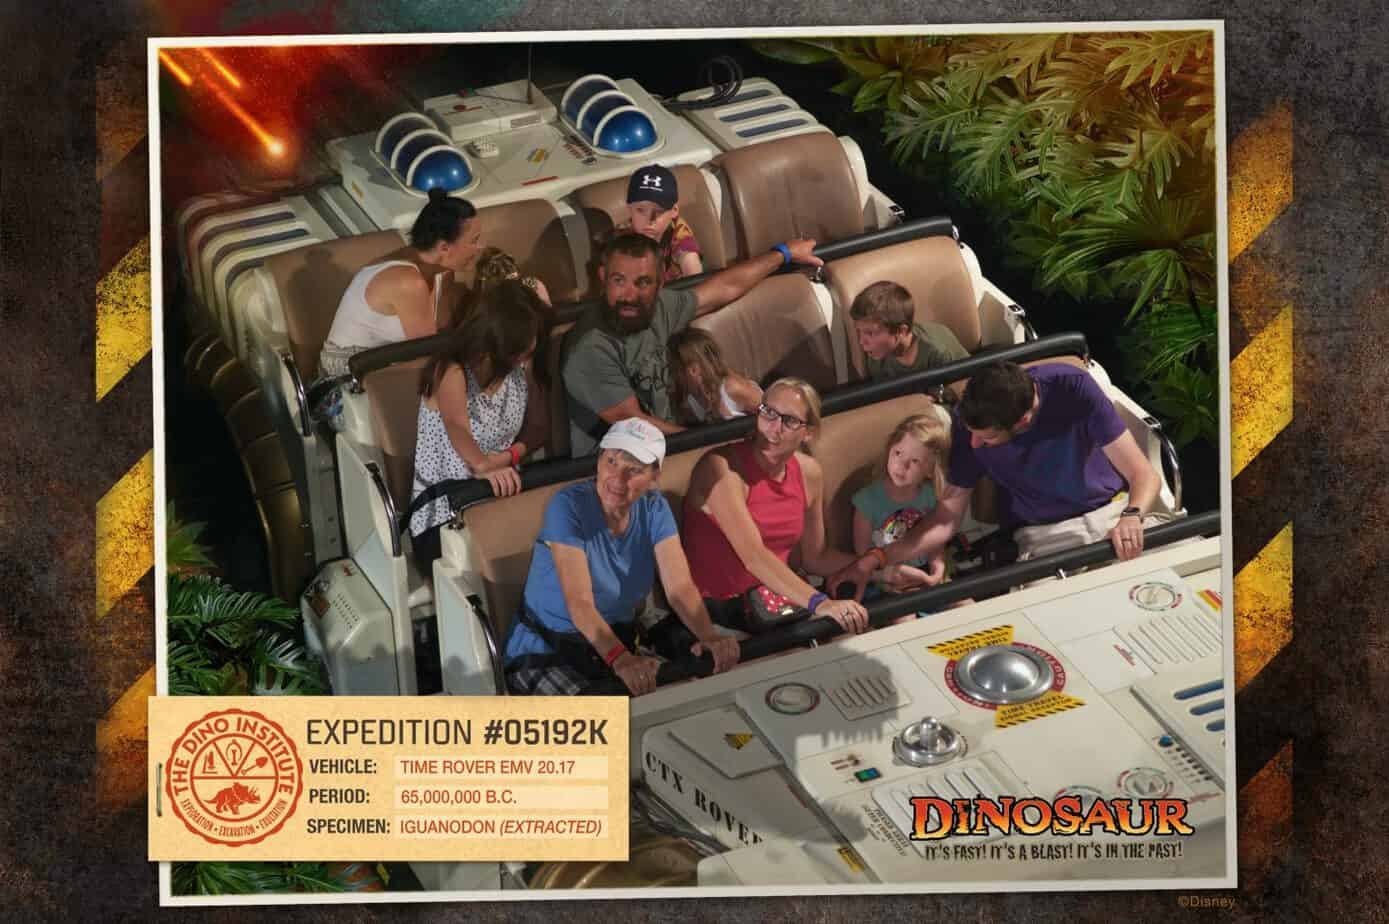 On the dinosaur ride at Animal Kingdom